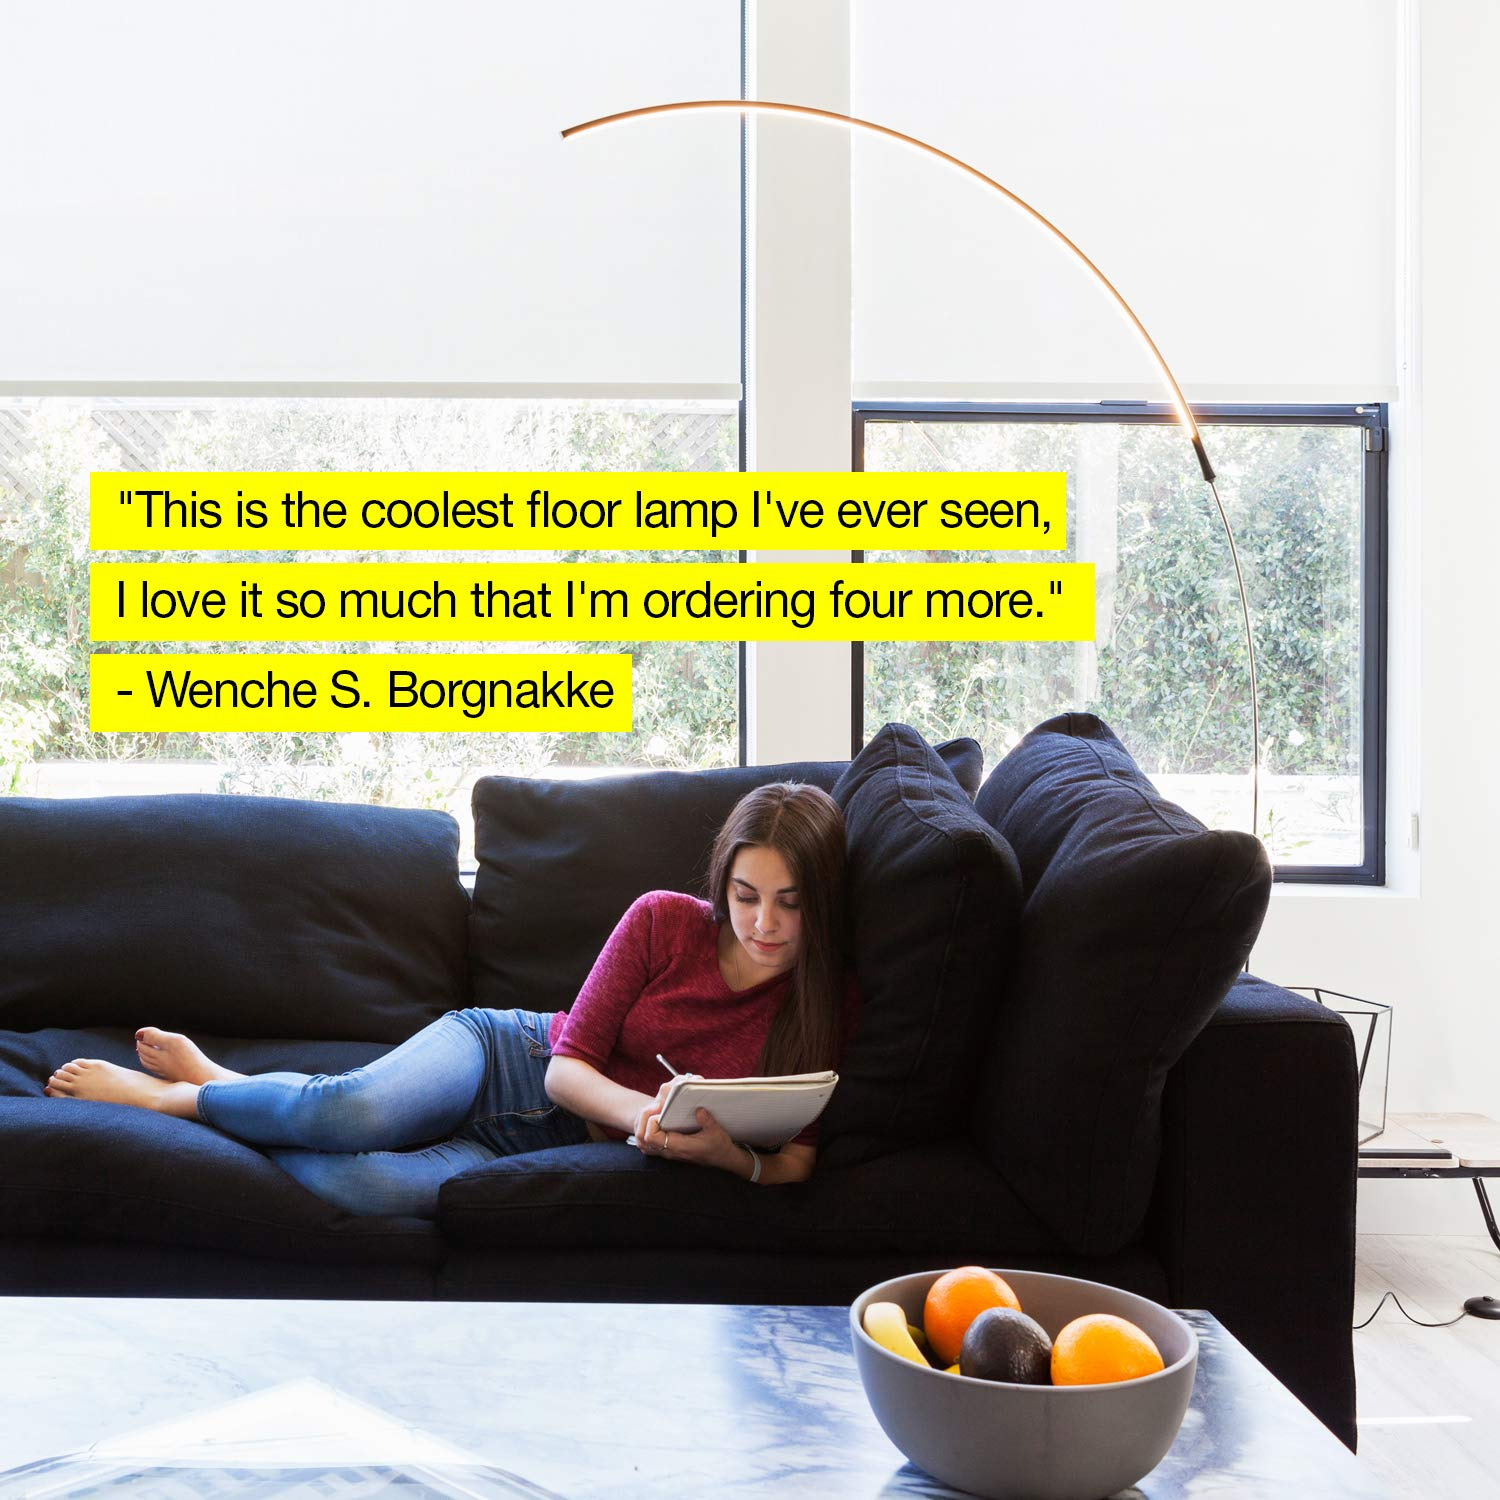 Brightech Sparq Arc LED Floor Lamp - Bright Standing Lamp for Living Room - Modern Arched Light for Behind the Couch - Dimmable Pole Lamp- Silver by Brightech (Image #4)